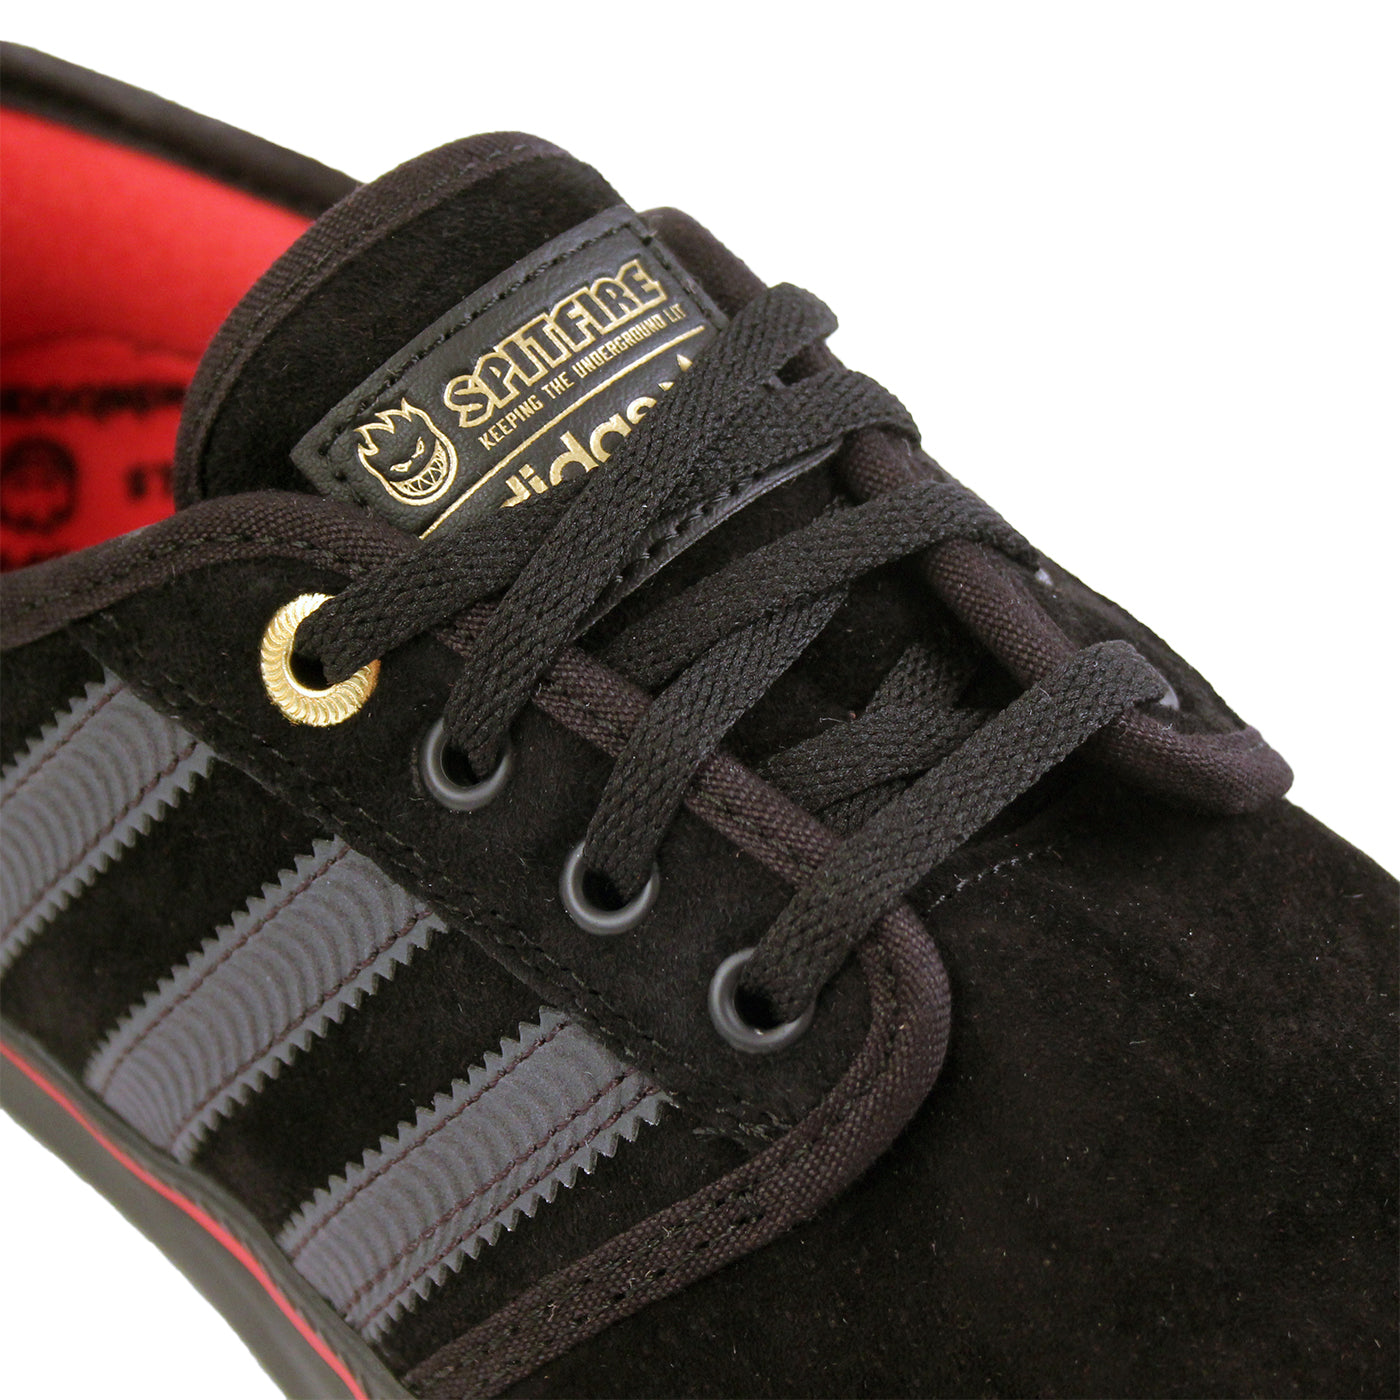 new arrival afc63 a8aa7 Adidas Skateboarding x Spitfire Seeley ADV Donnelley Shoes i